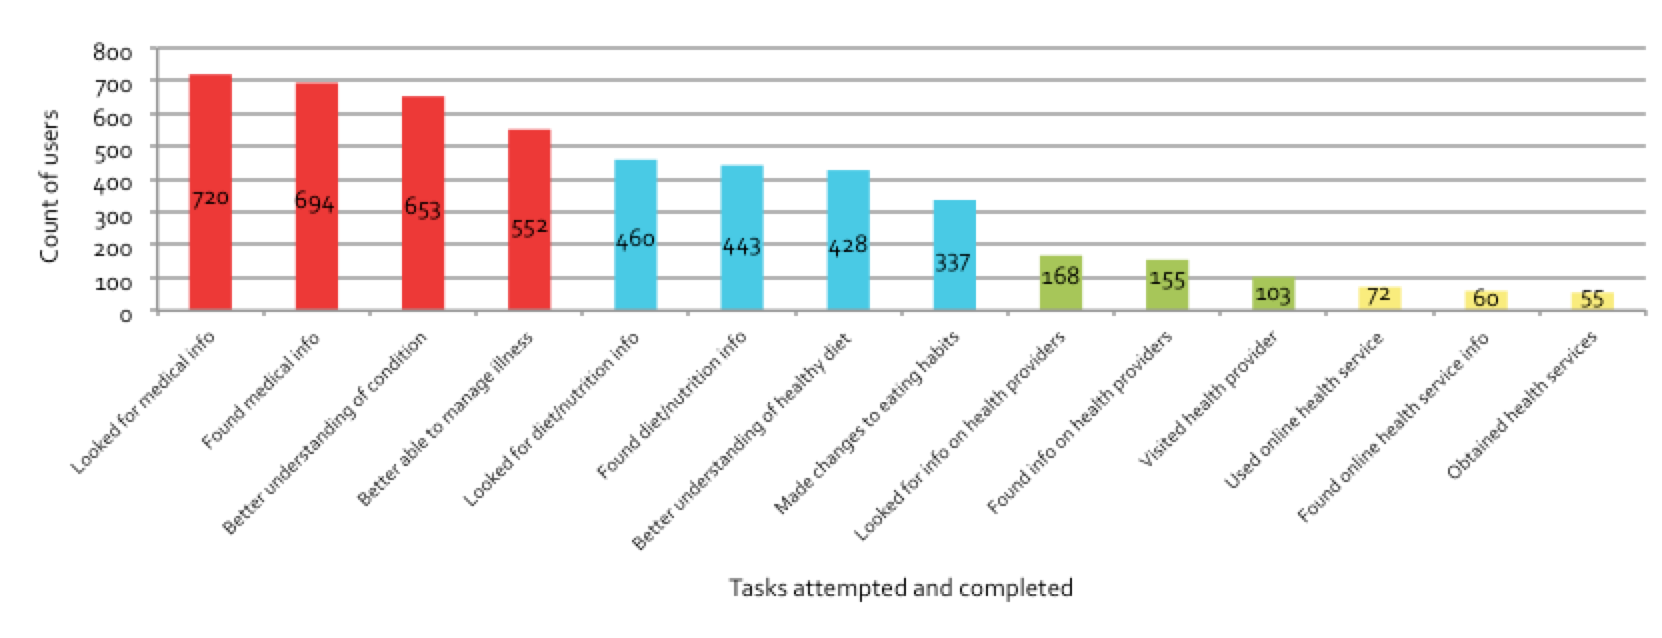 Figure 5.6: Tasks attempted and completed, health domain